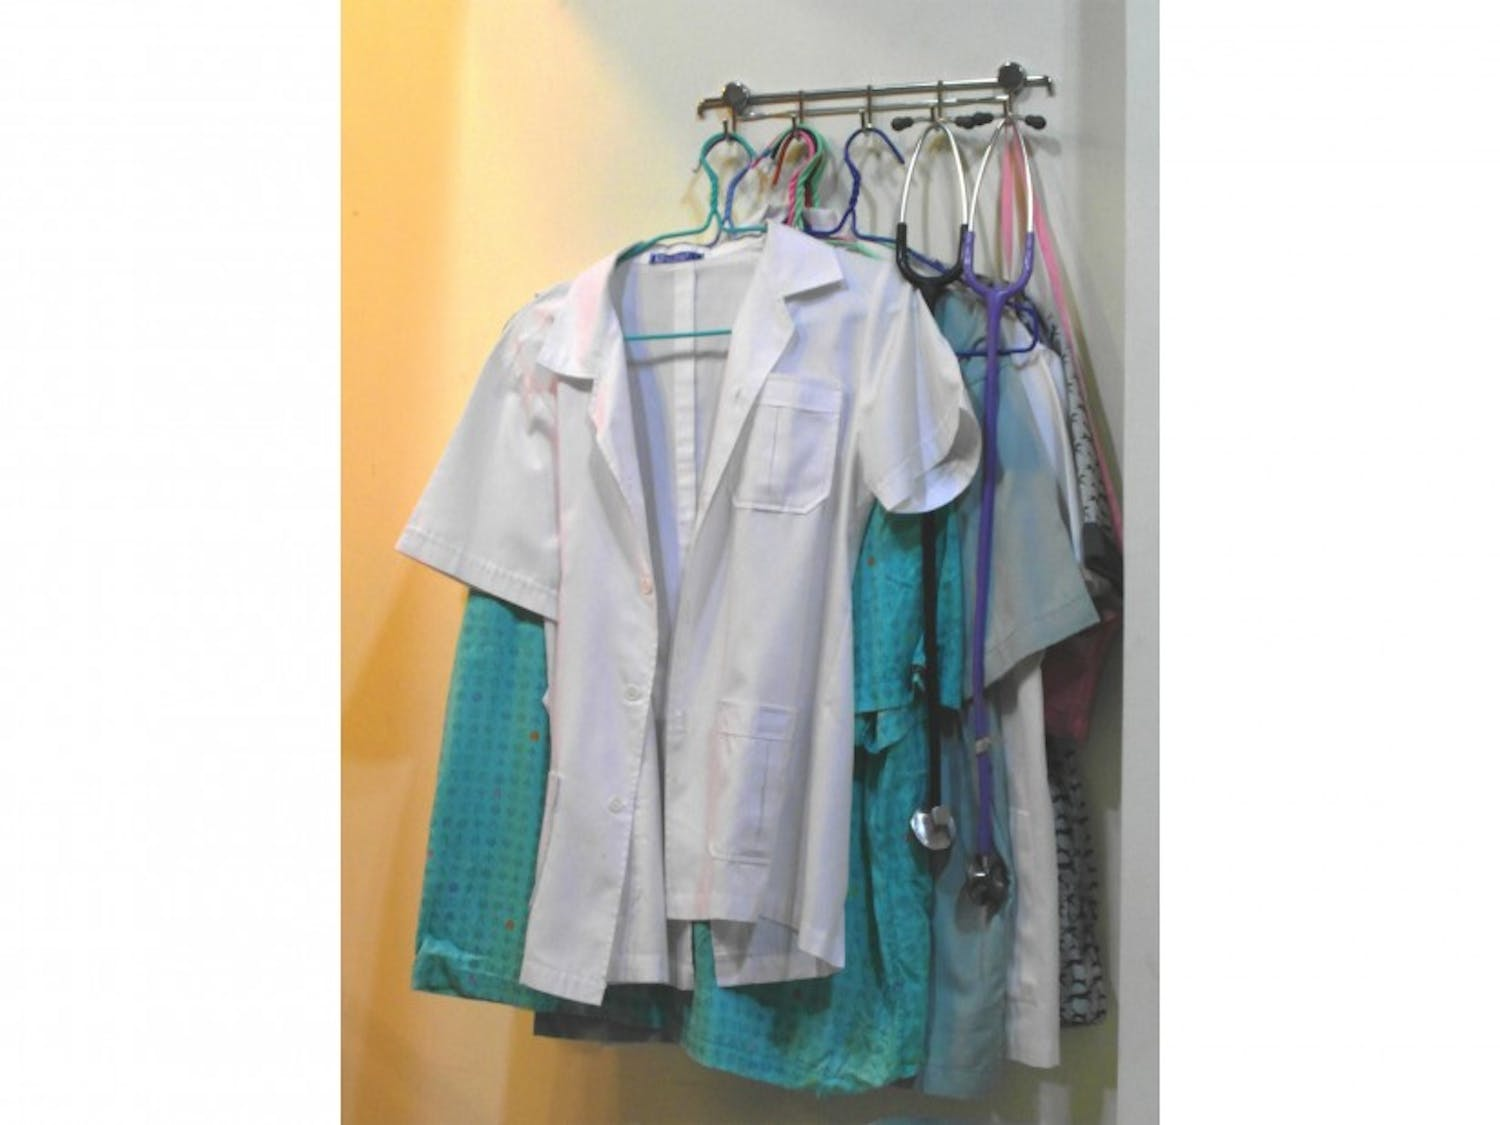 The study found that wearingantiseptic scrubs did not lead to decreased contamination of nurses' clothing.